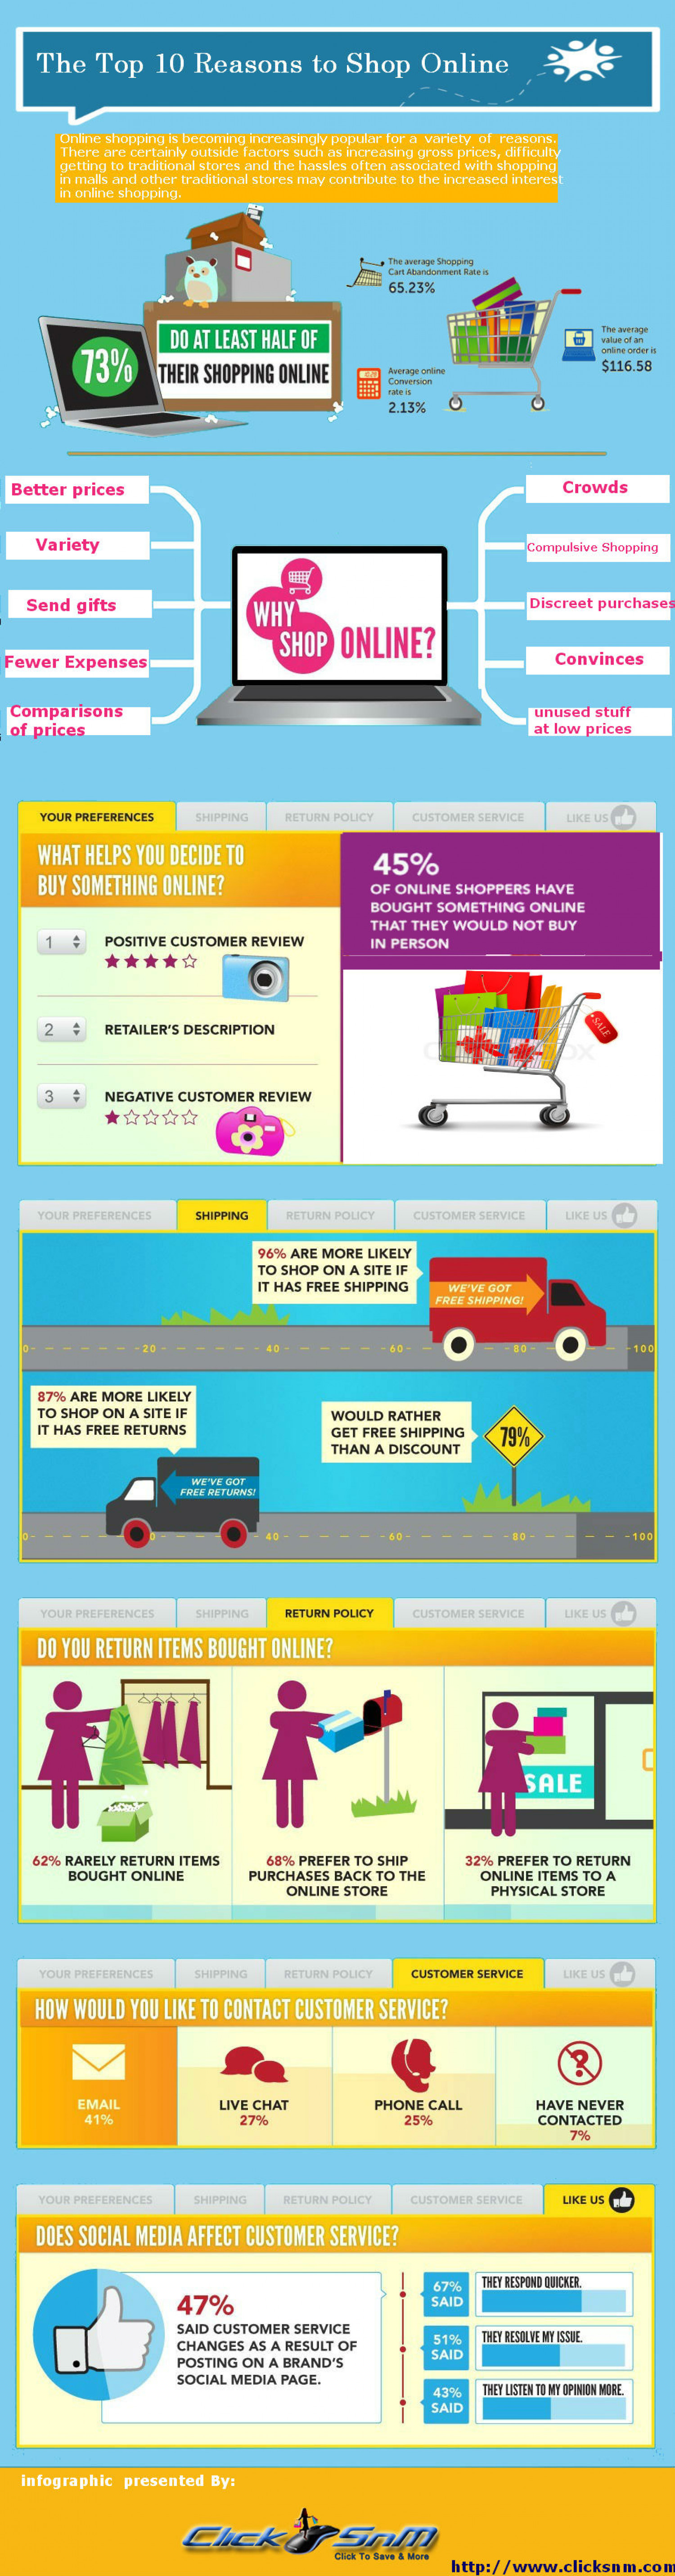 Online Shopping Trends 2013-14 Infographic